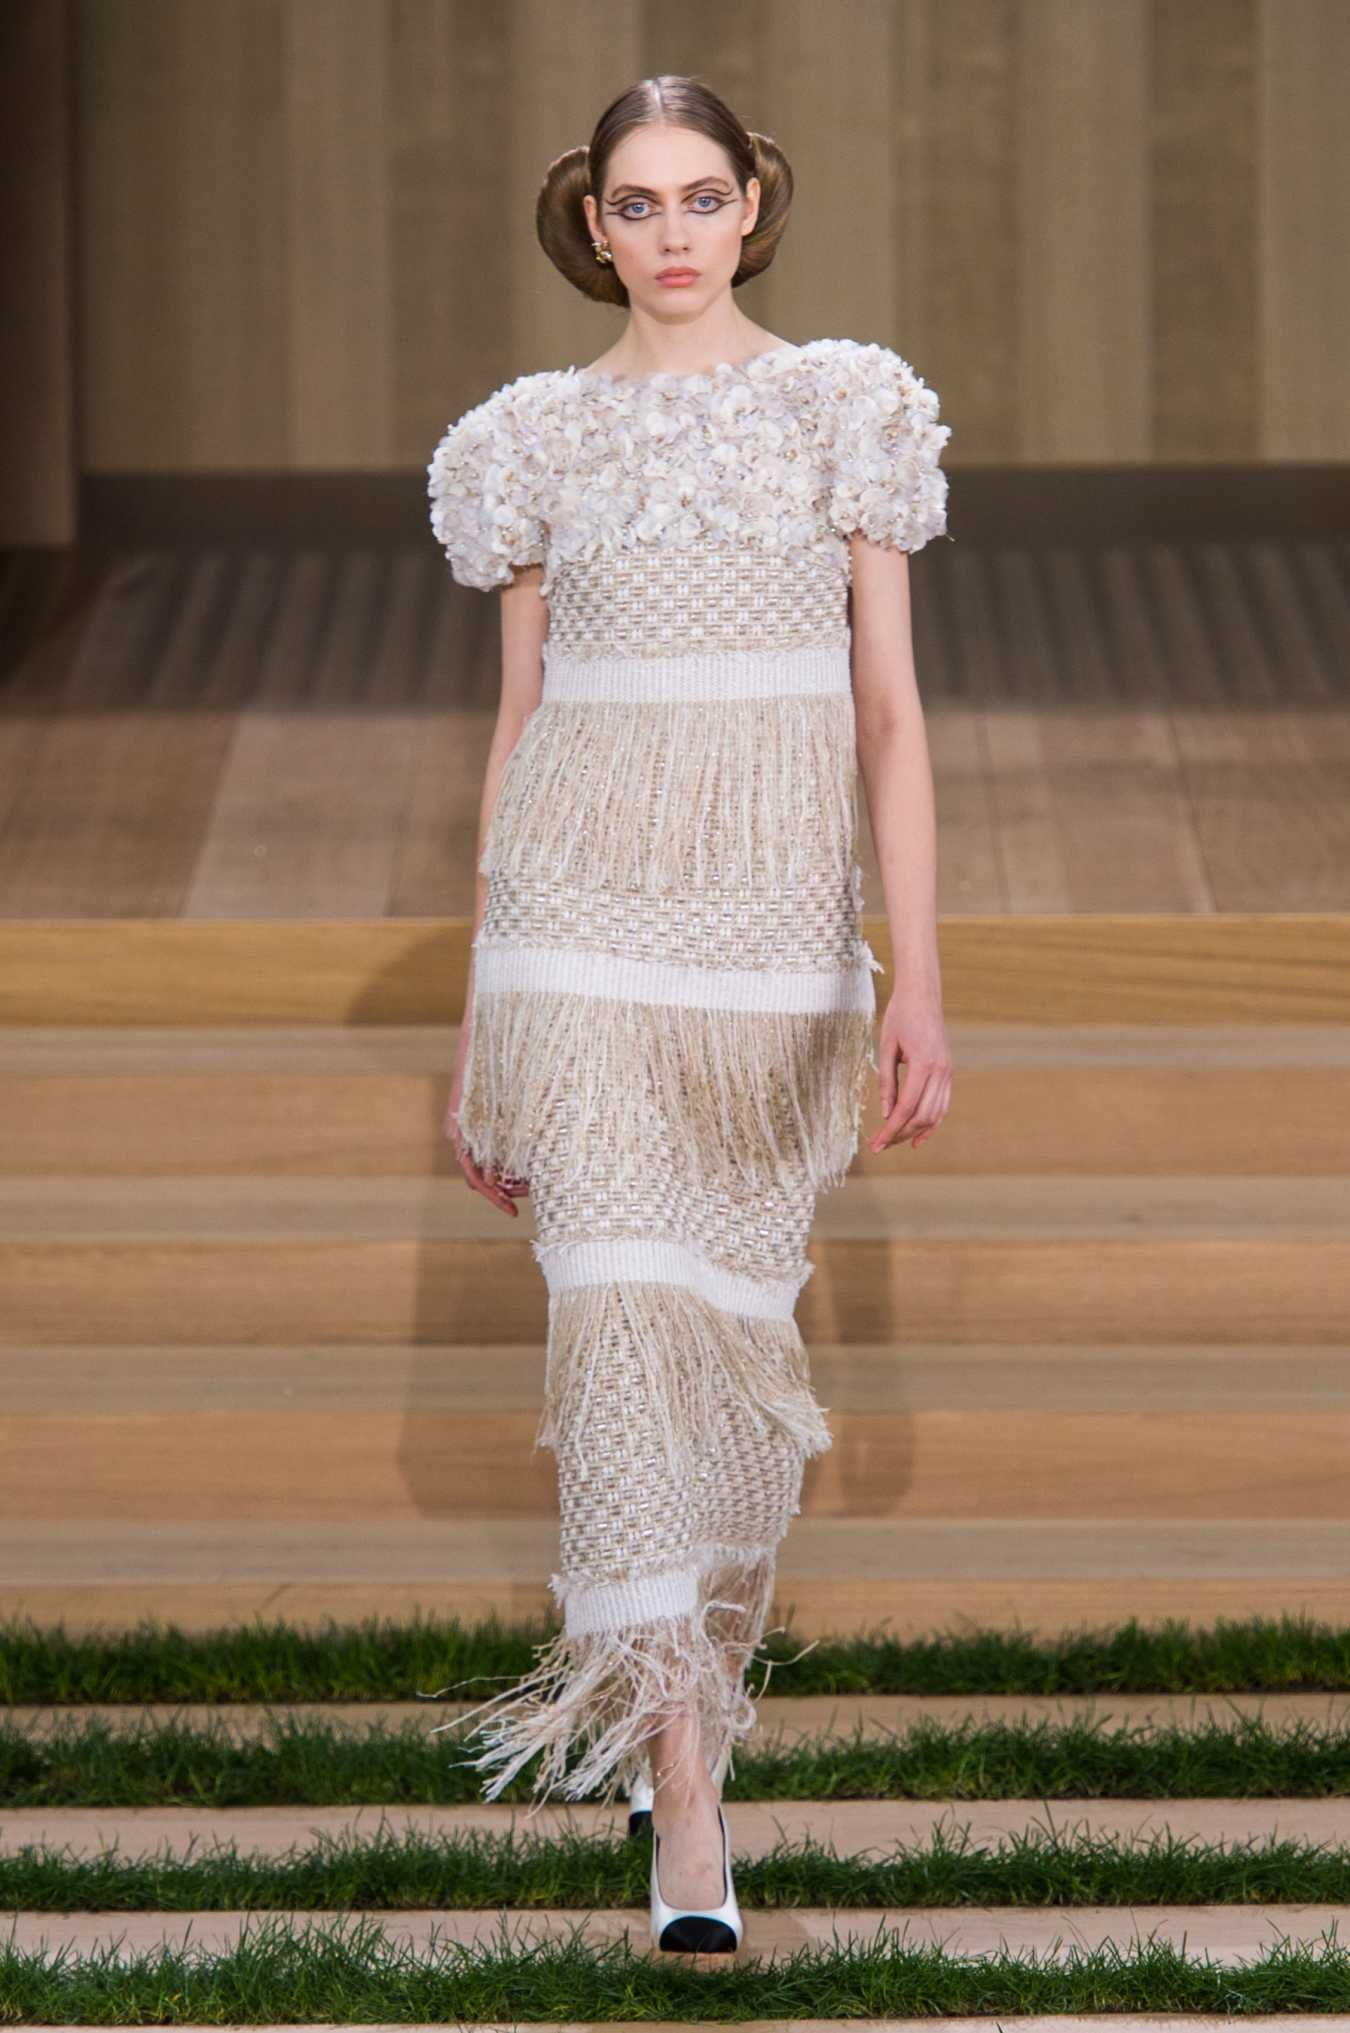 A look from the Chanel spring 2016 Haute Couture collection. Photo: Imaxtree.